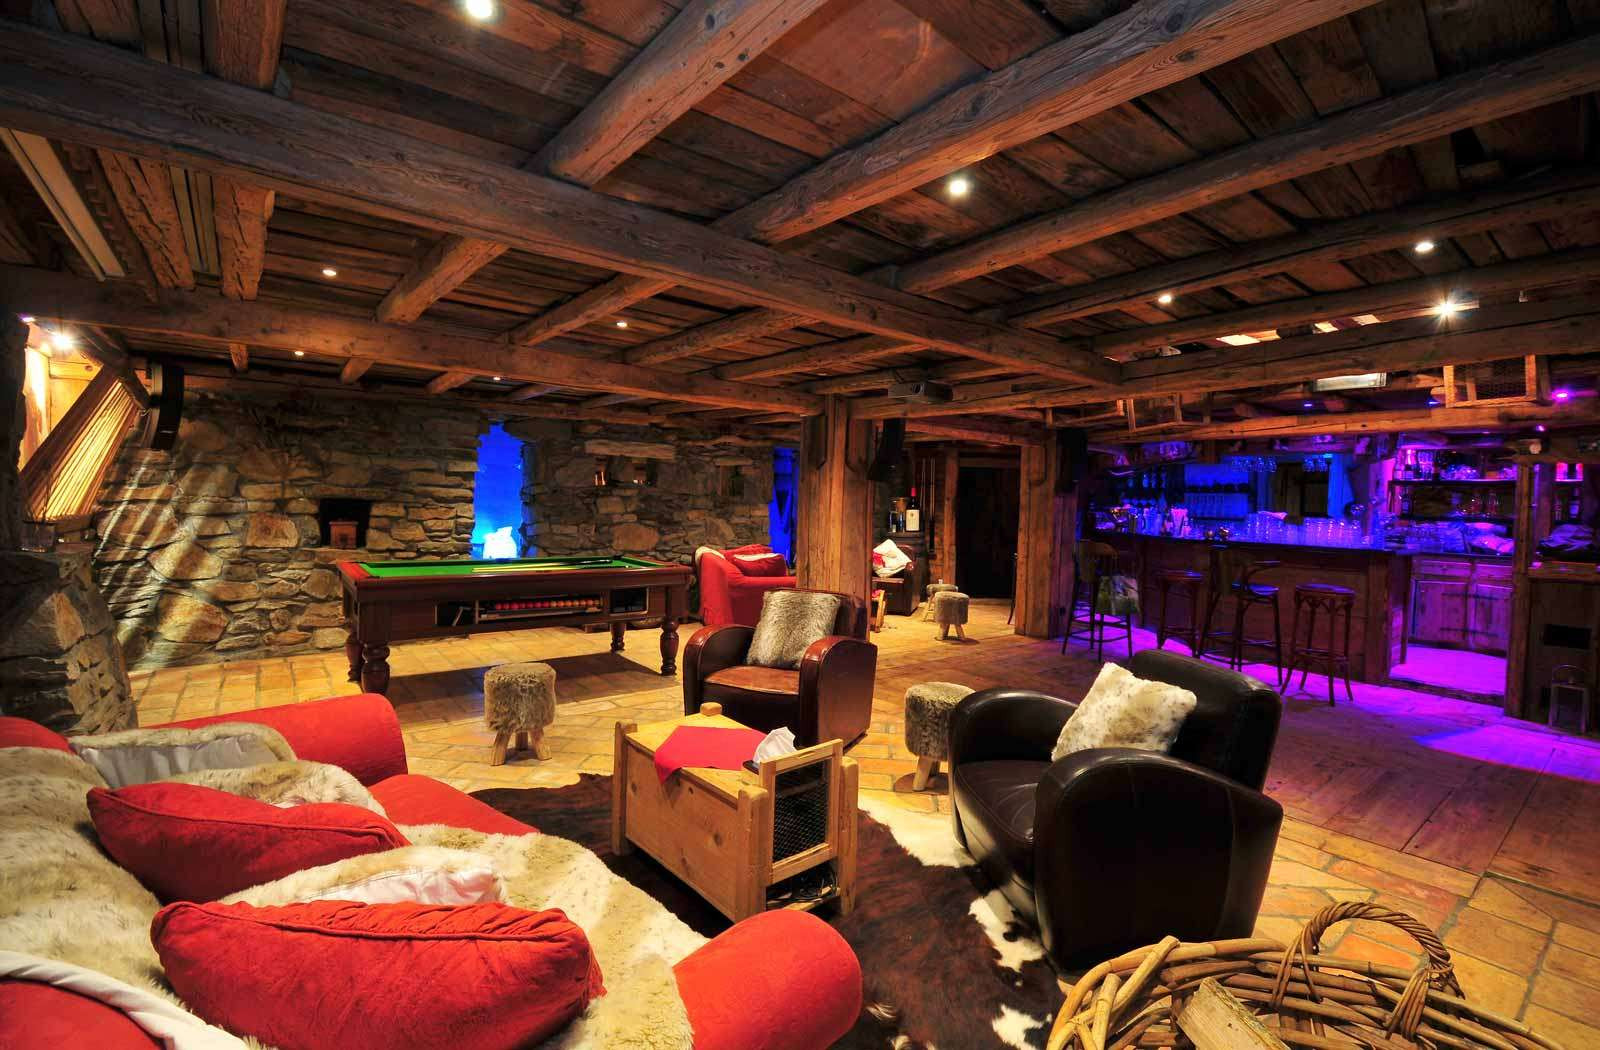 Best ideas about Luxury Game Room . Save or Pin The most expensive and Luxurious Chalets in the world 2017 Now.